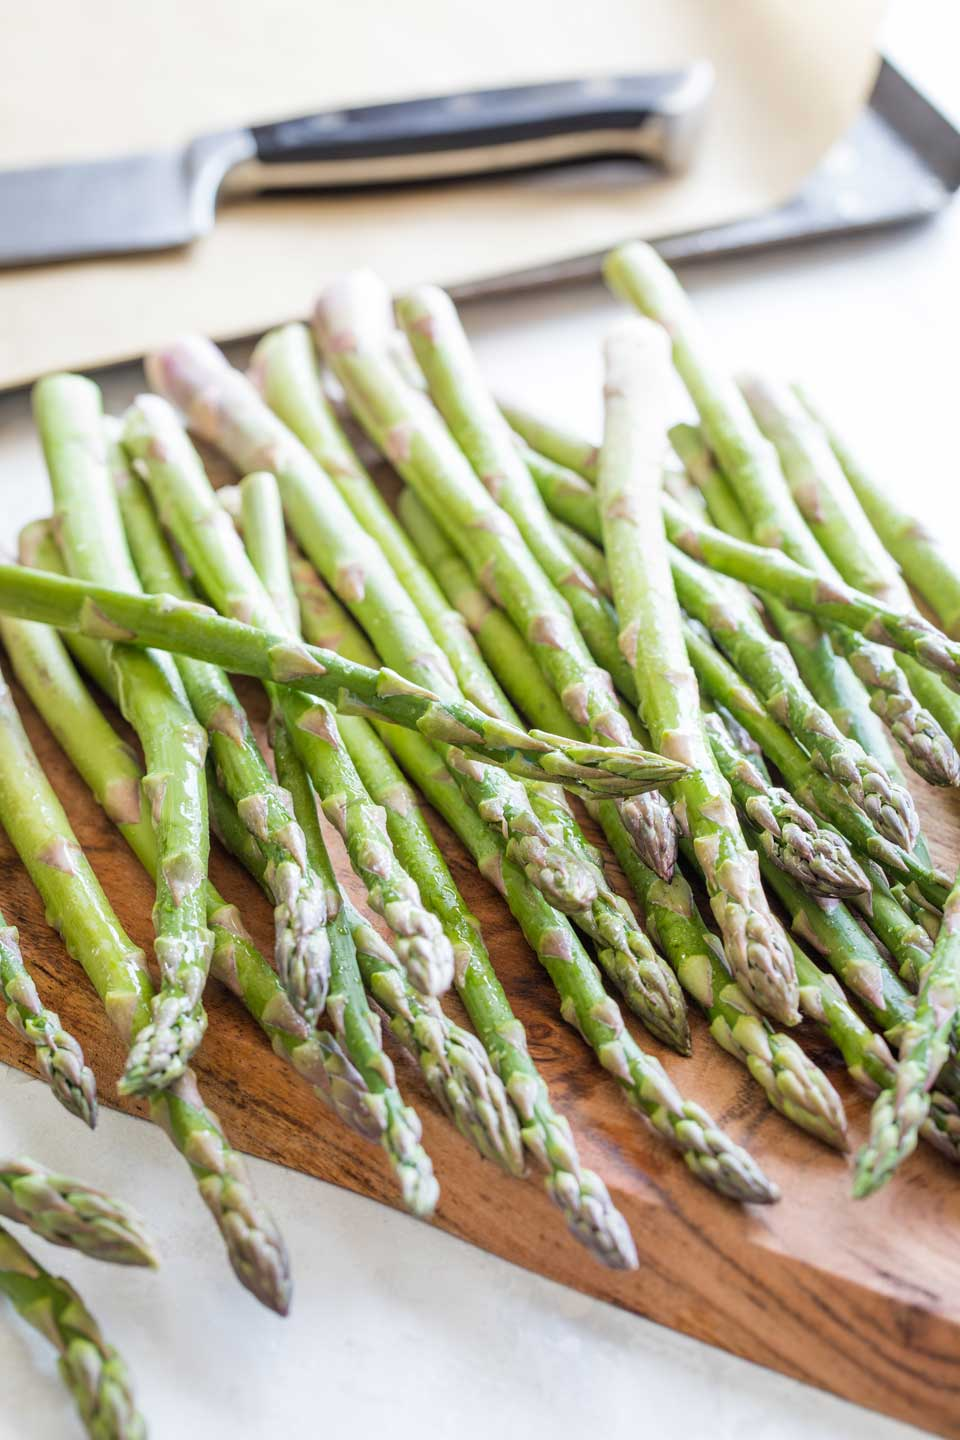 A pound of asparagus, rinsed and rolled across a wooden cutting board with a roasting pan and knife in the background.